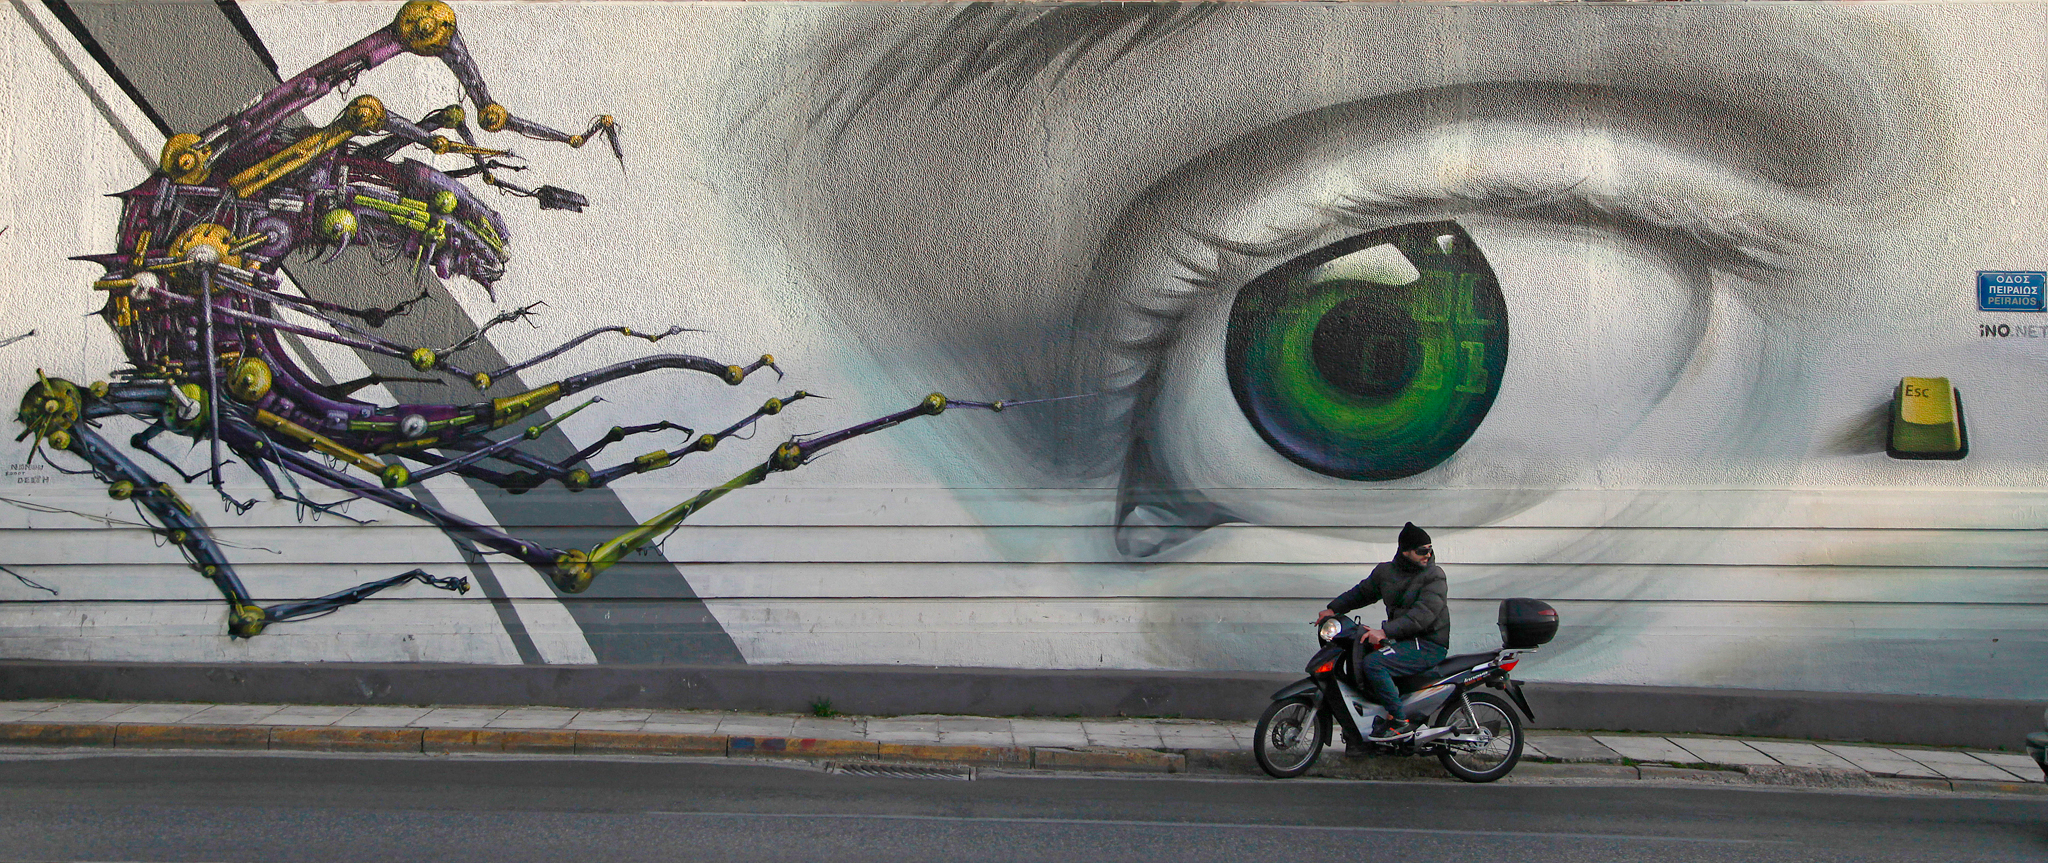 In this photo taken on Thursday Feb. 20, 2014, a motorcyclist passes the work 'Access Control' by Greek street artist iNO, on central Pireos Street in Athens. Greece has attracted international street artists to its capital, due to the availability of commissioned work and relatively lax anti-graffiti law.